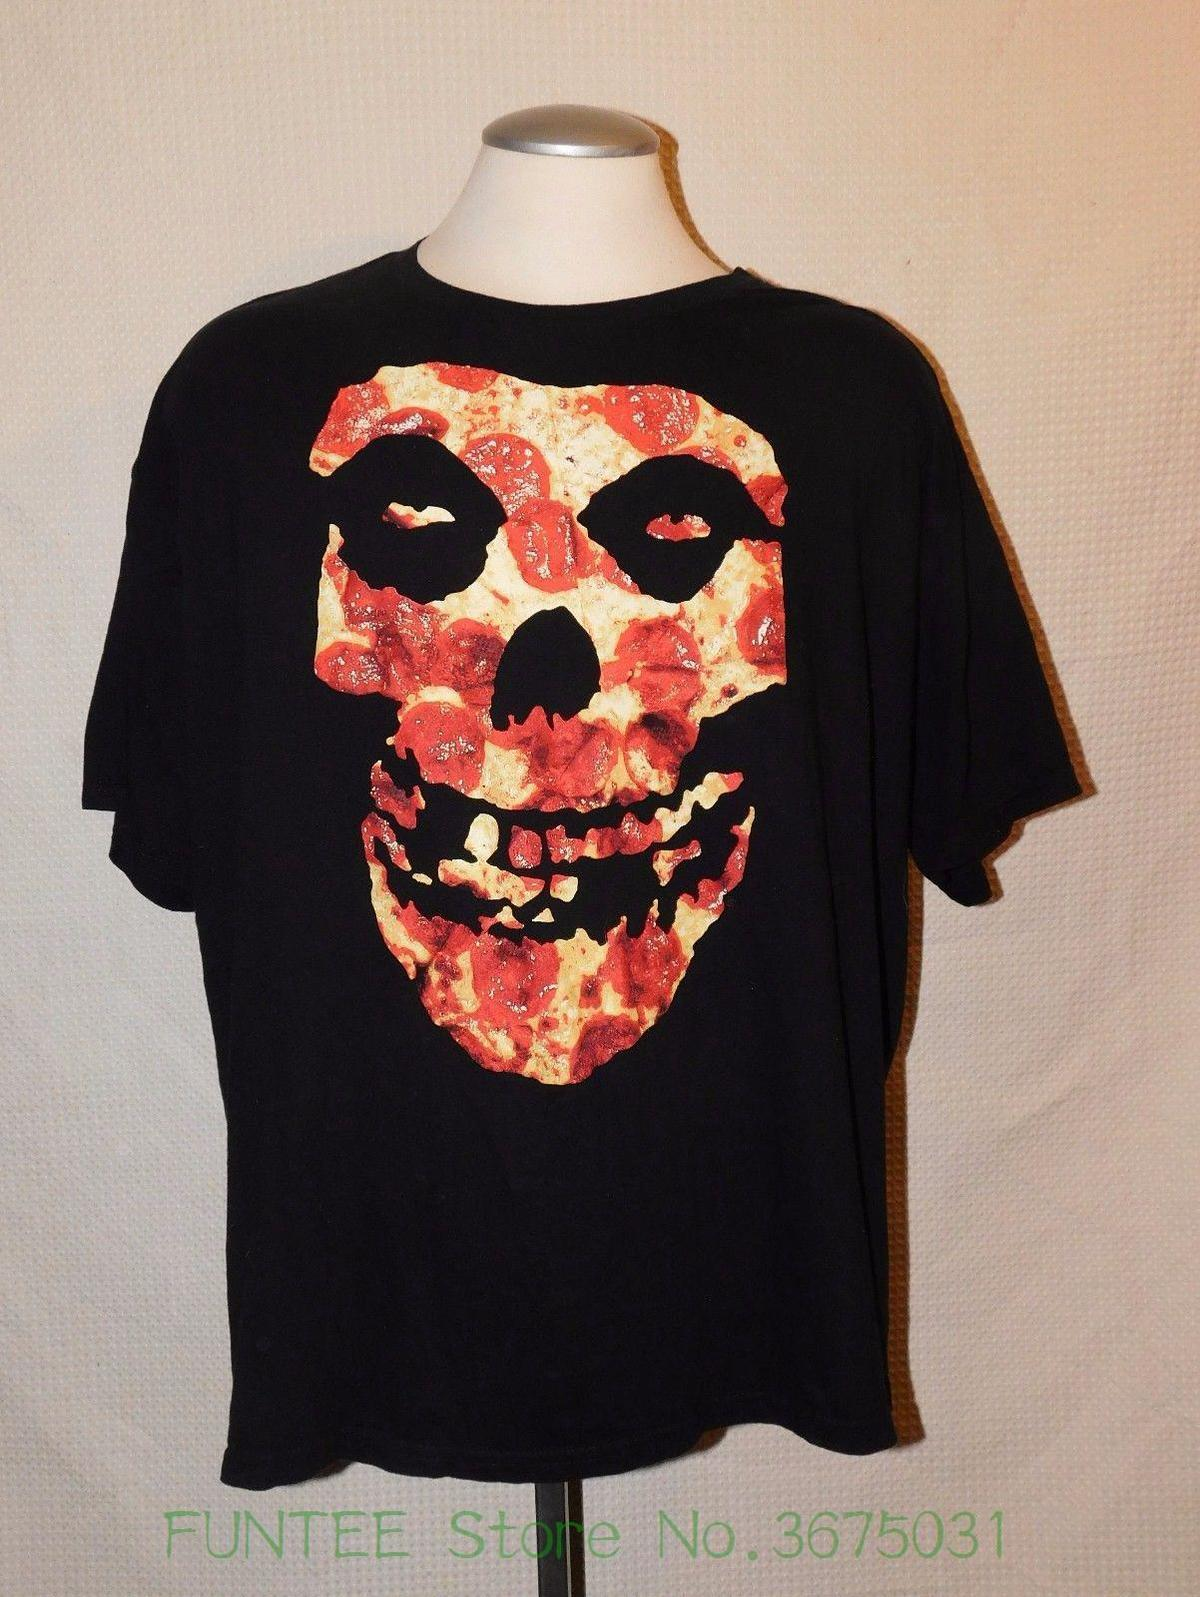 Men Adult Slim Fit T Shirt S-xxl Rare Mens Misfits Pizza Skull Face T-shirt Sz 3xl Punk Rock Band Shirt